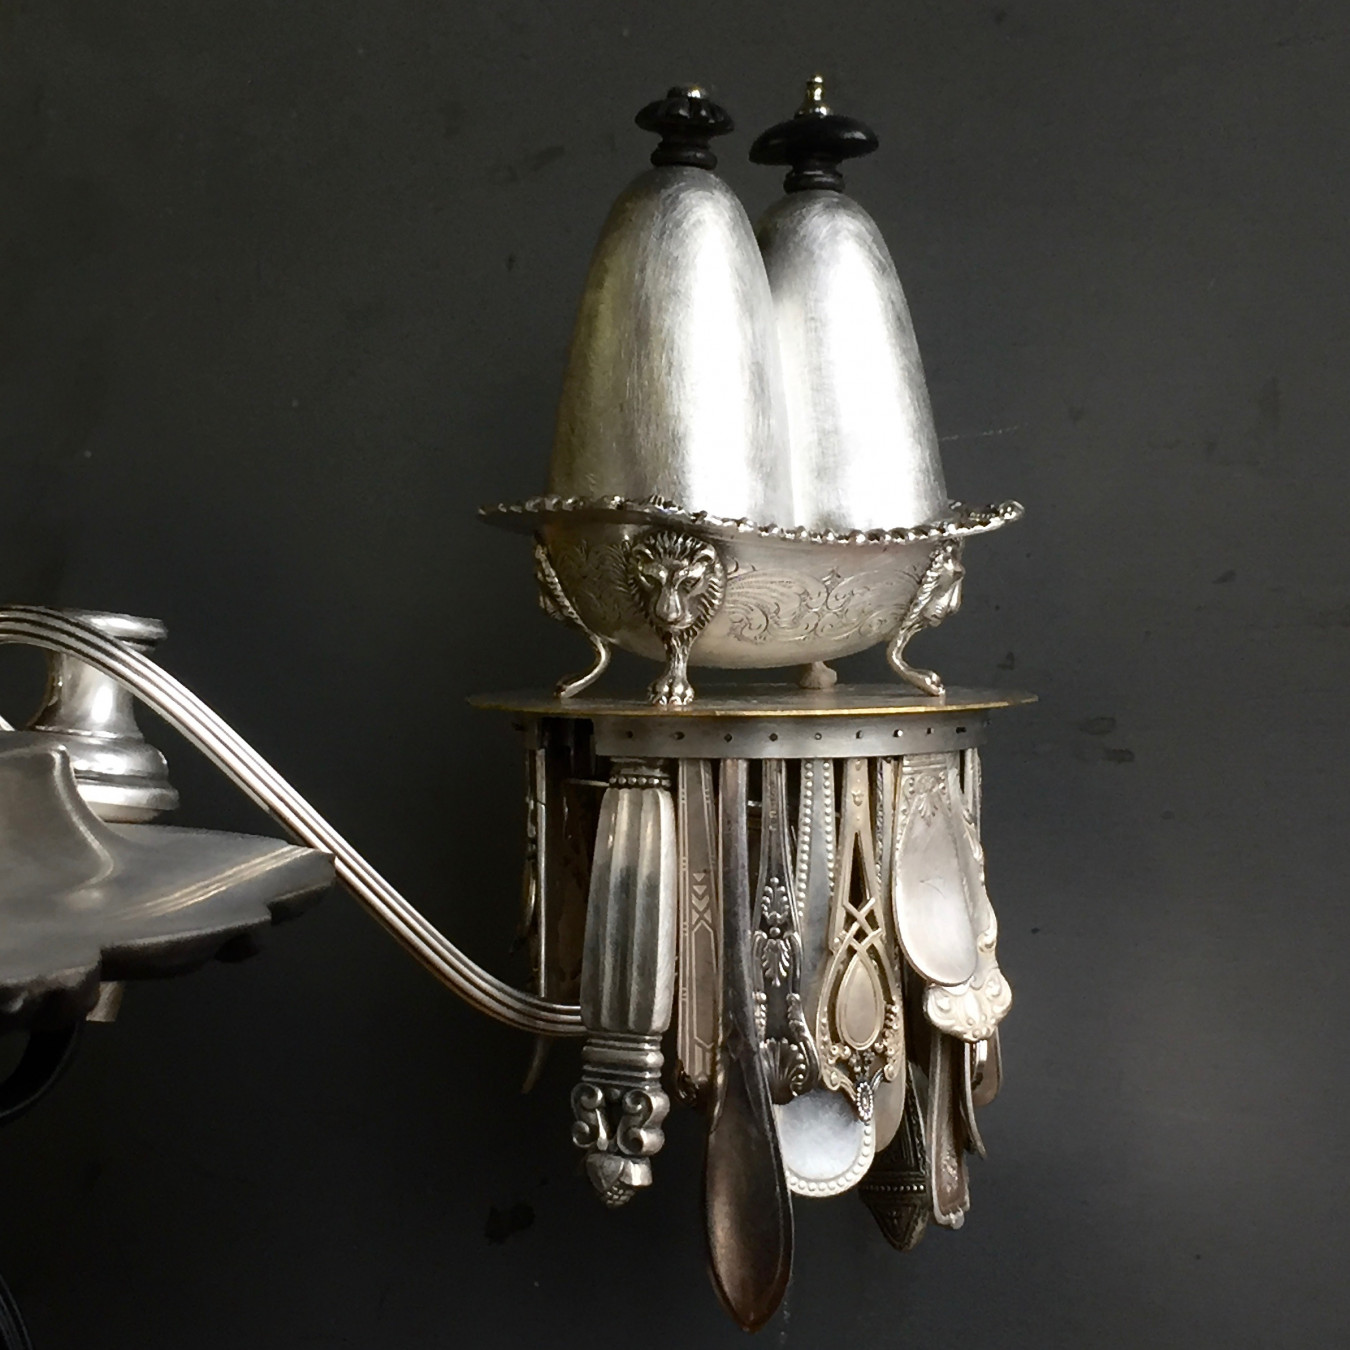 Detail image of a small salt cellar that has been altered and given a fancy lid, sitting on a platform fringed with cultery.